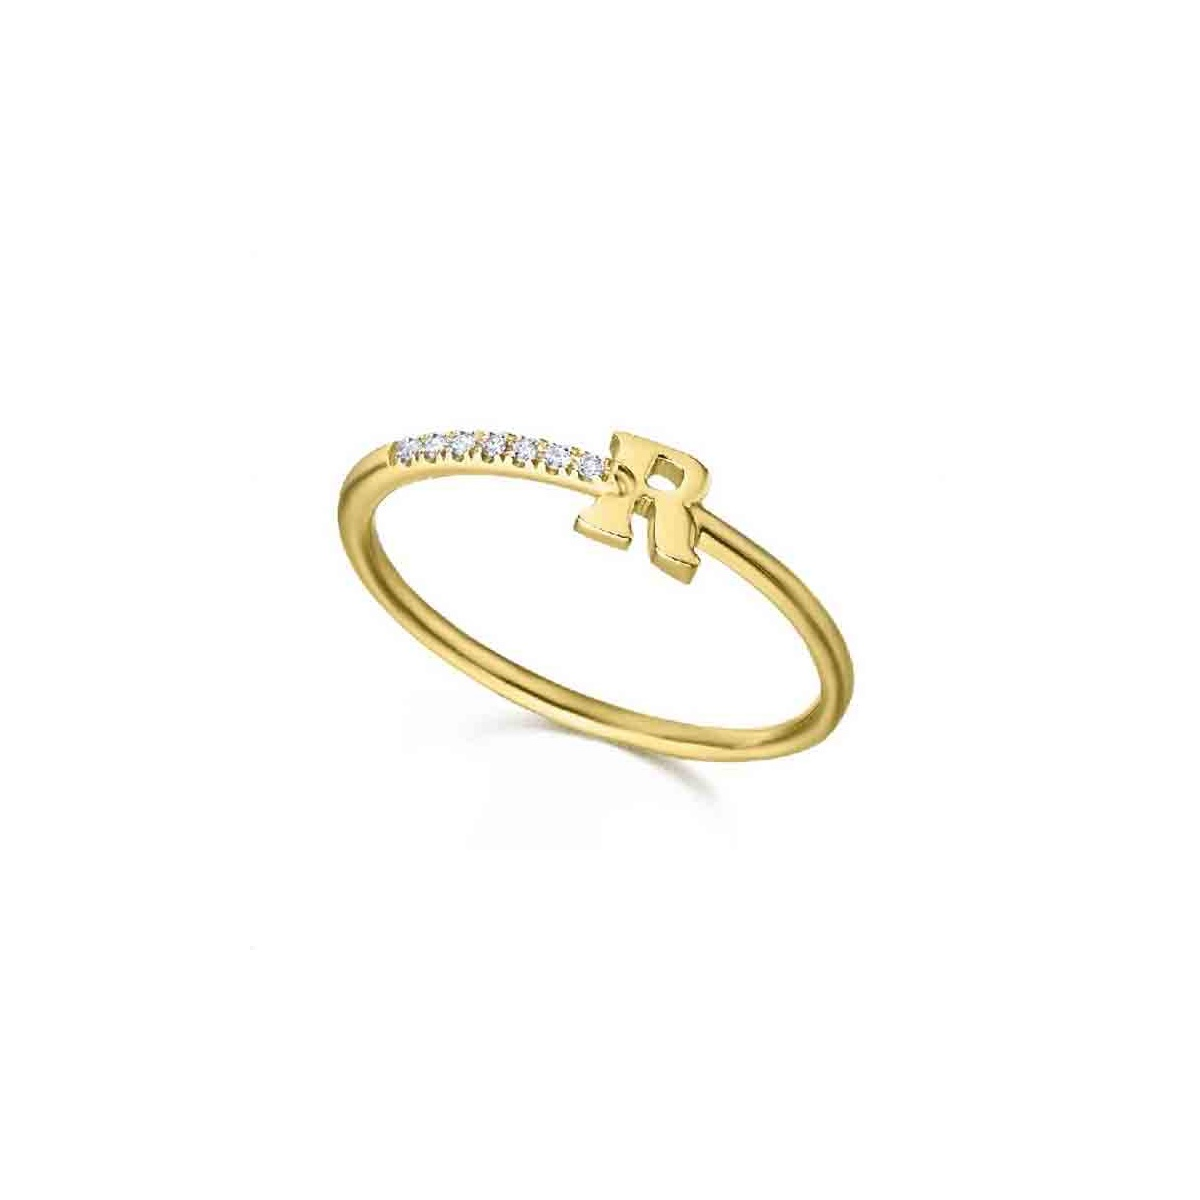 Anillo inicial oro amarillo y Diamantes - 0,02 quilates